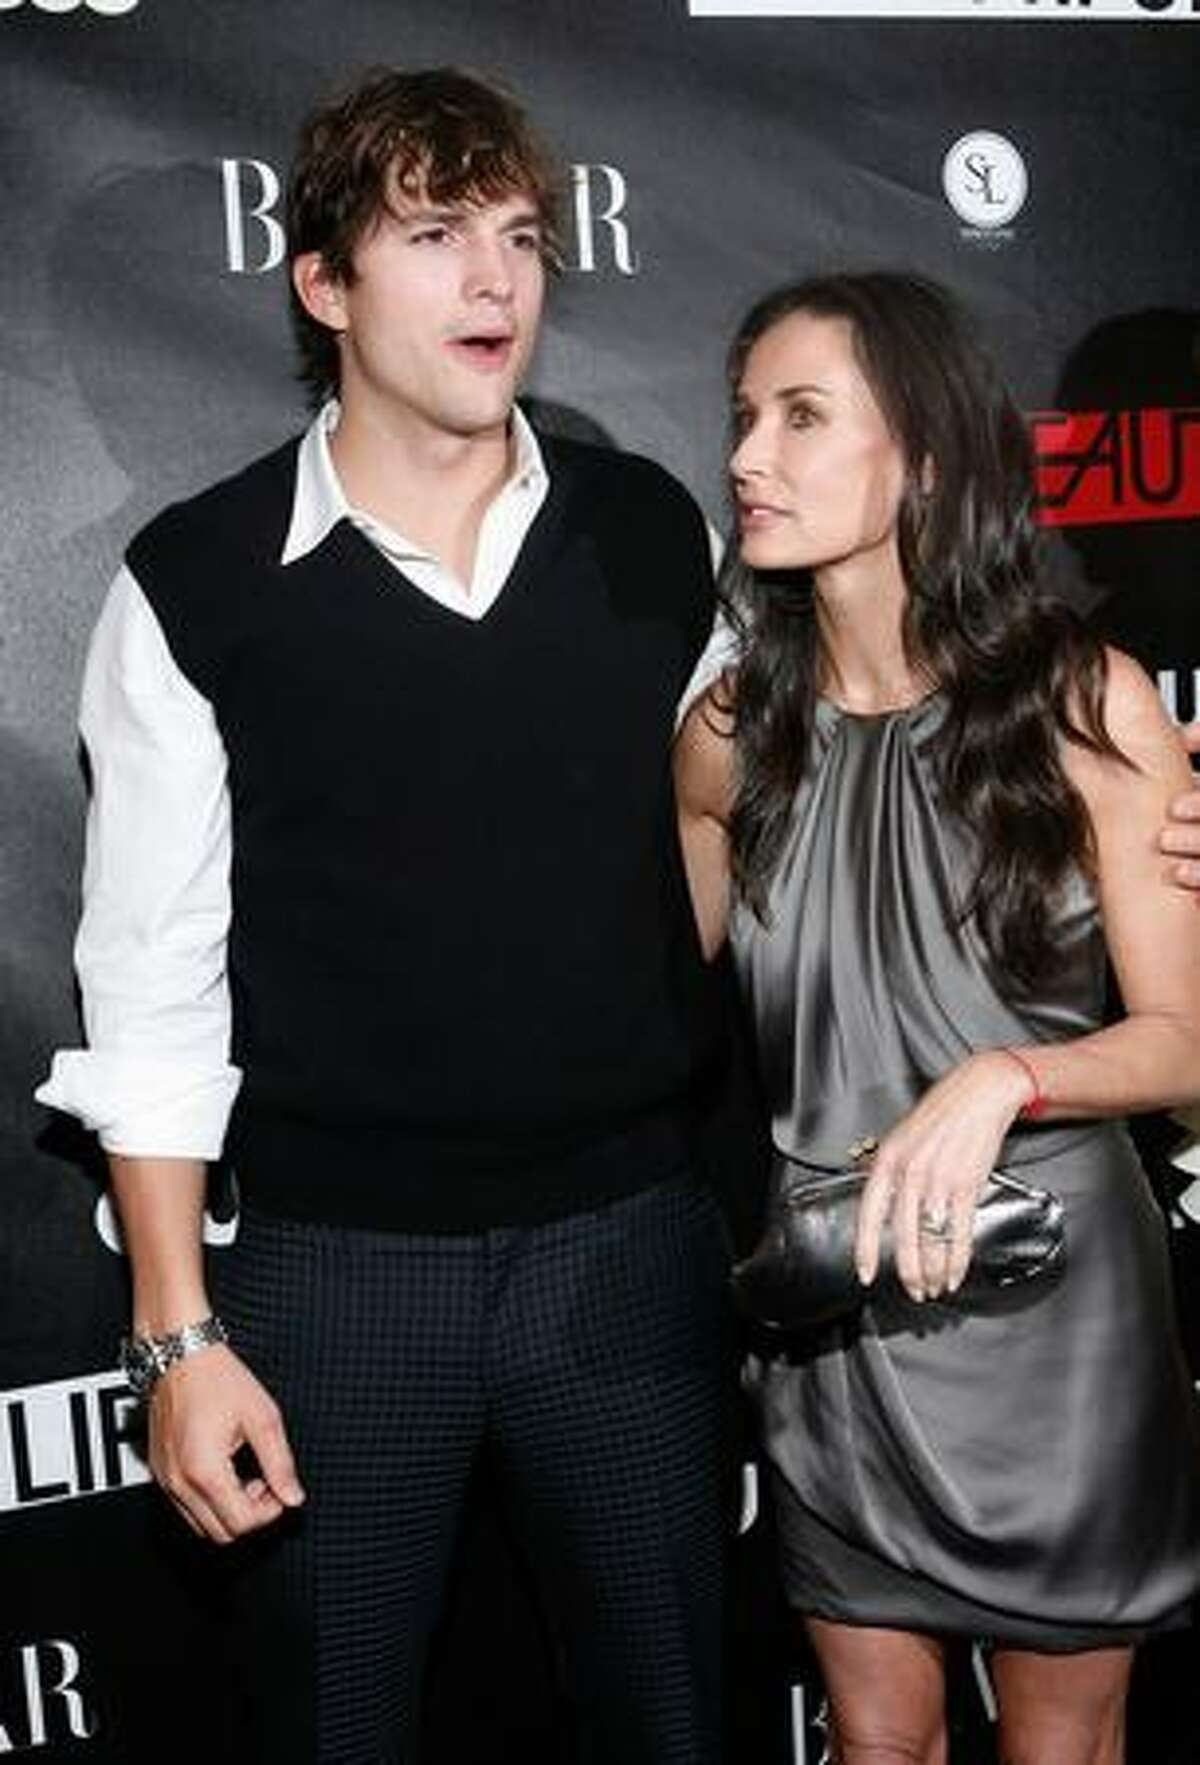 Actor Ashton Kutcher and actress Demi Moore walk the red carpet during the CW Network celebration of its new series